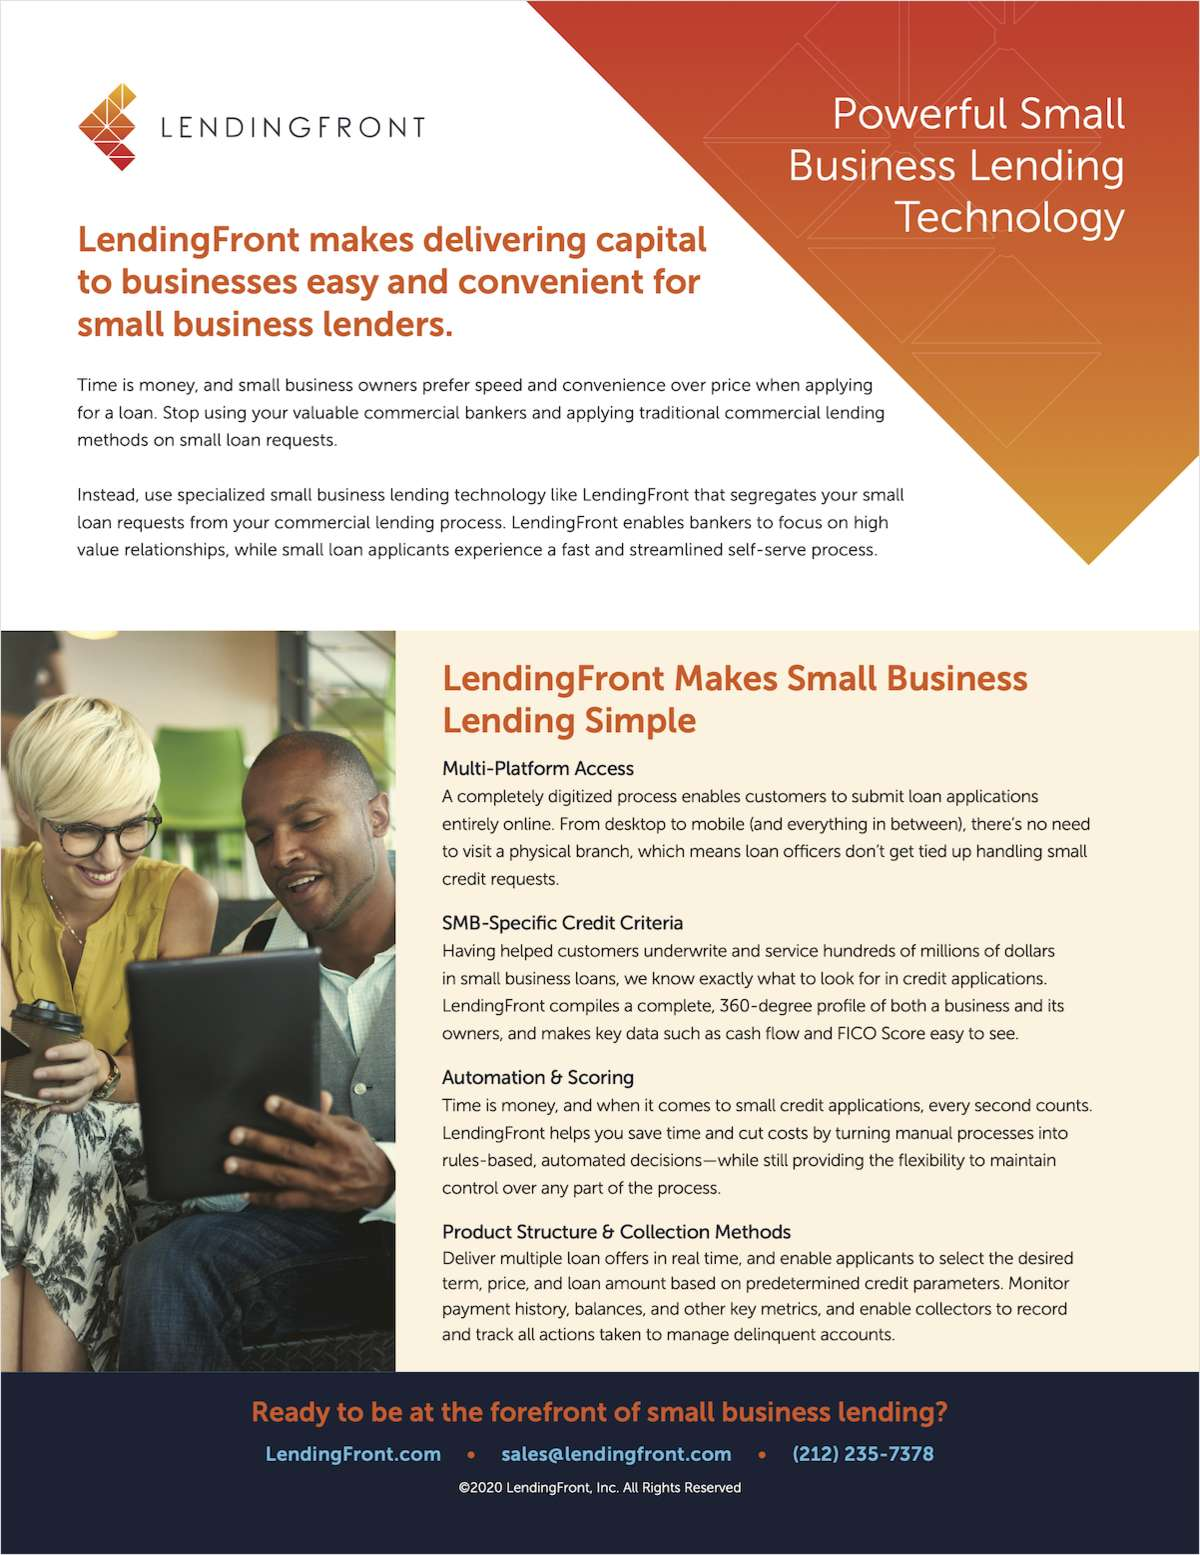 Your Guide to LendingFront: Powerful Small Business Lending Technology